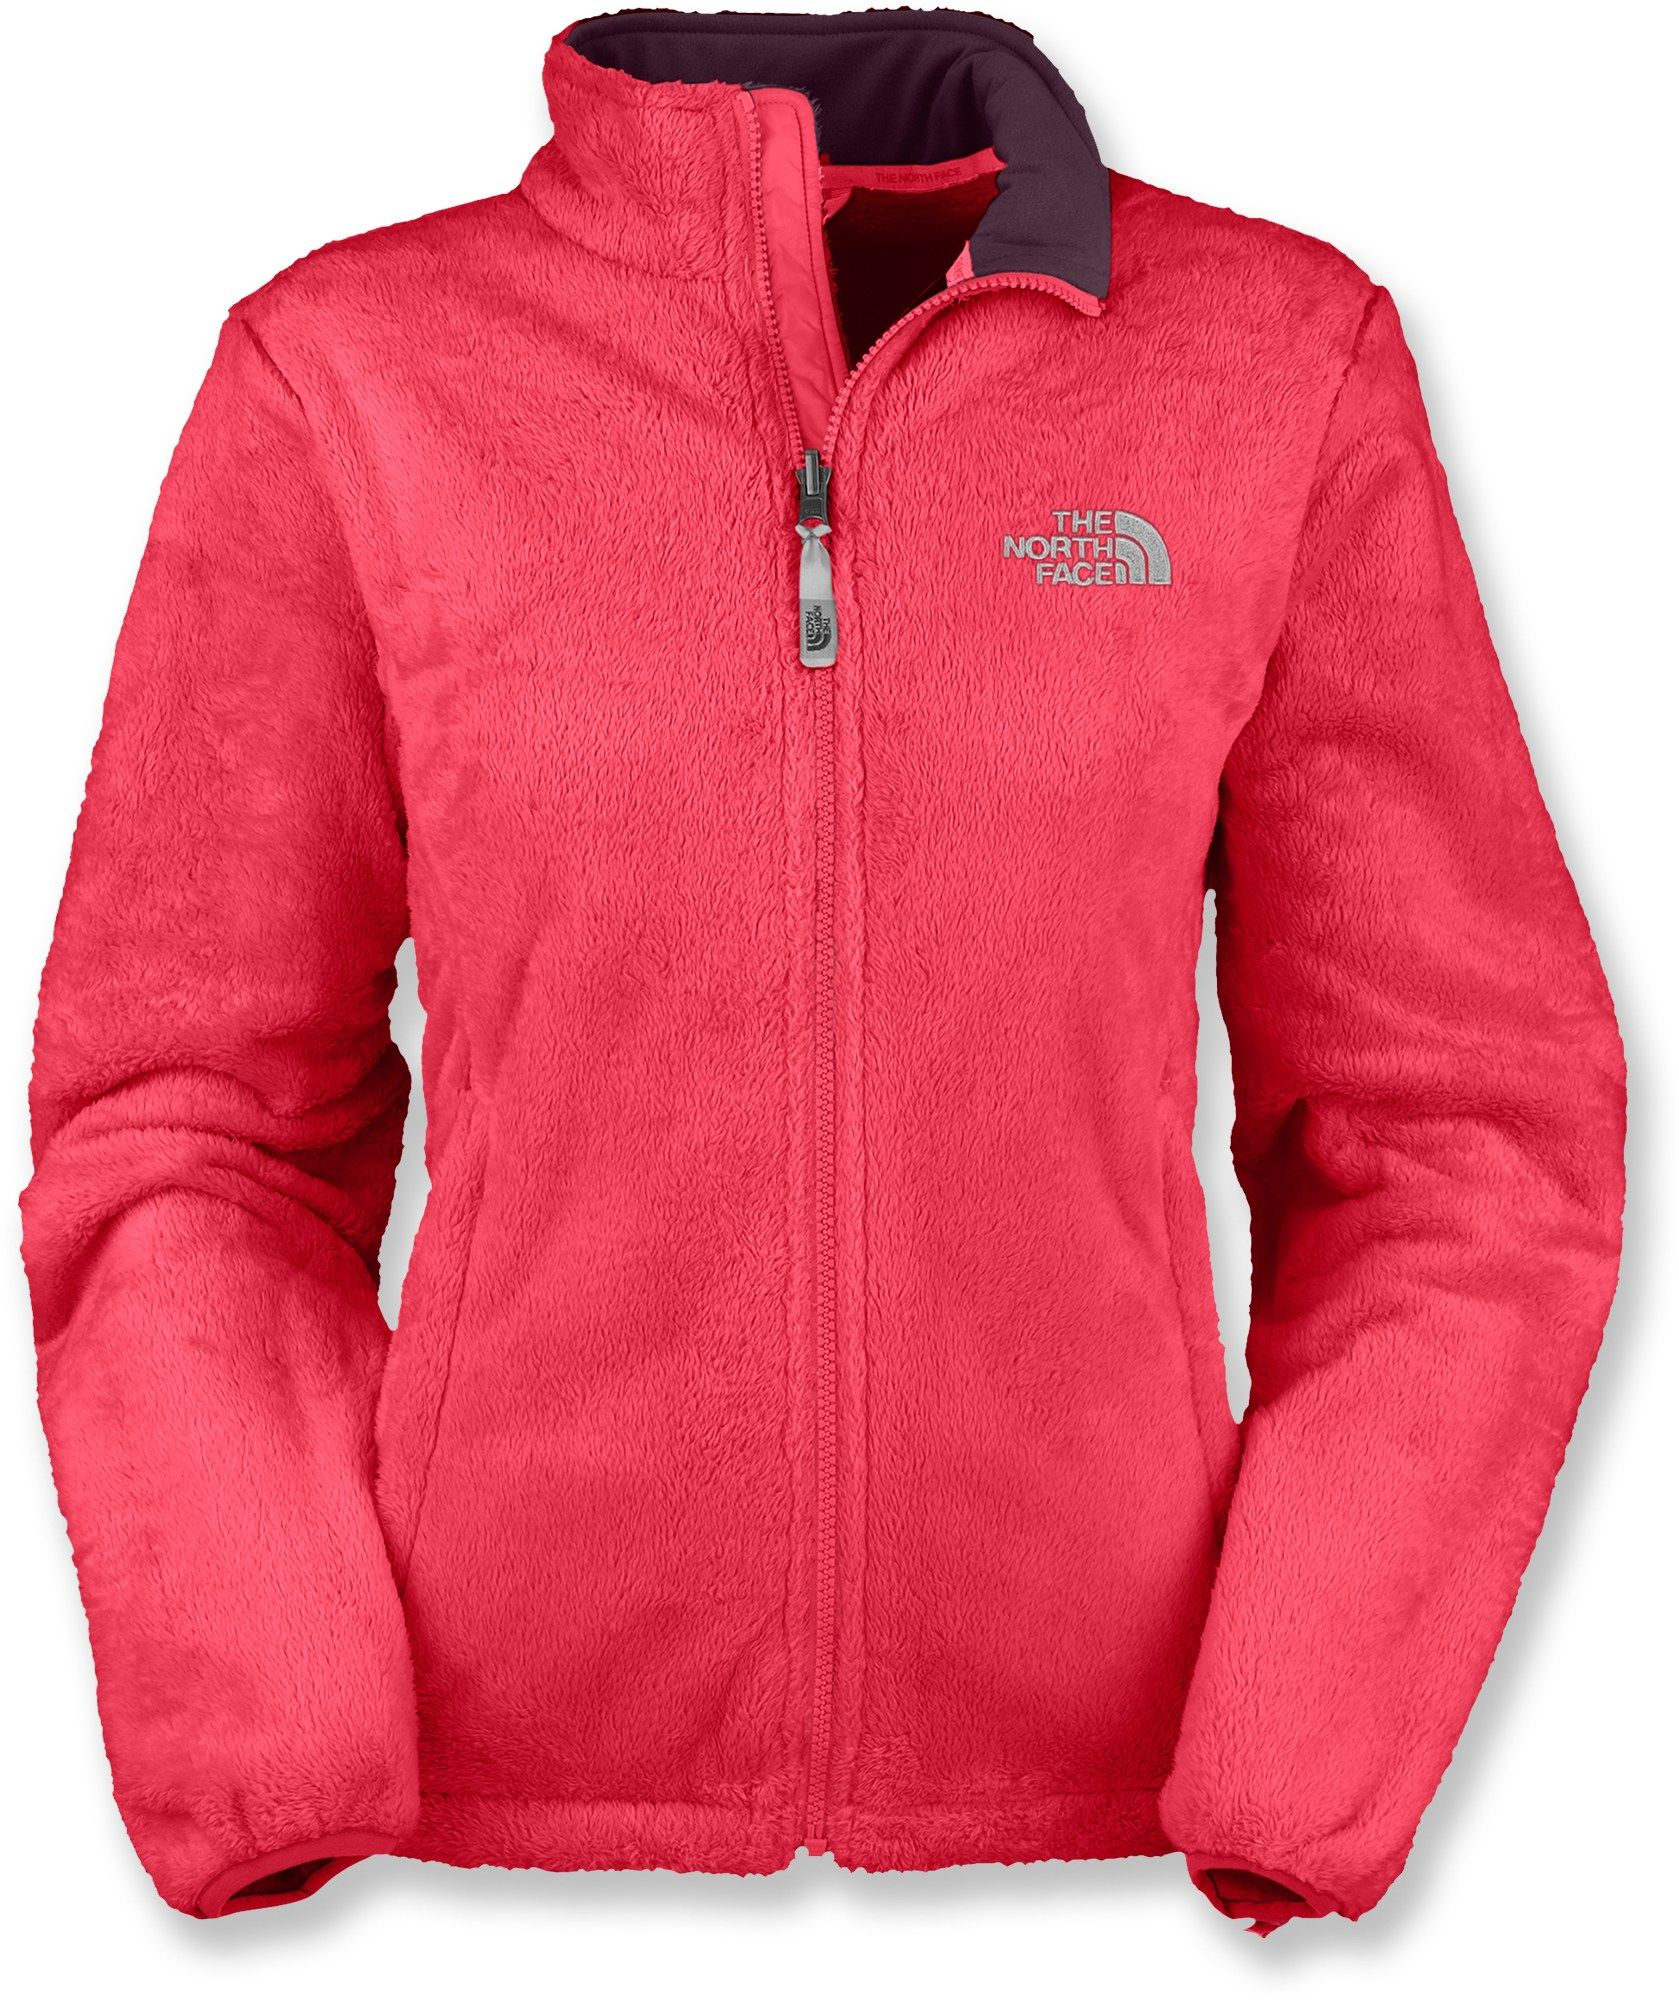 the north face osito 2 fleece jacket backcountrycom - HD 1679×2000